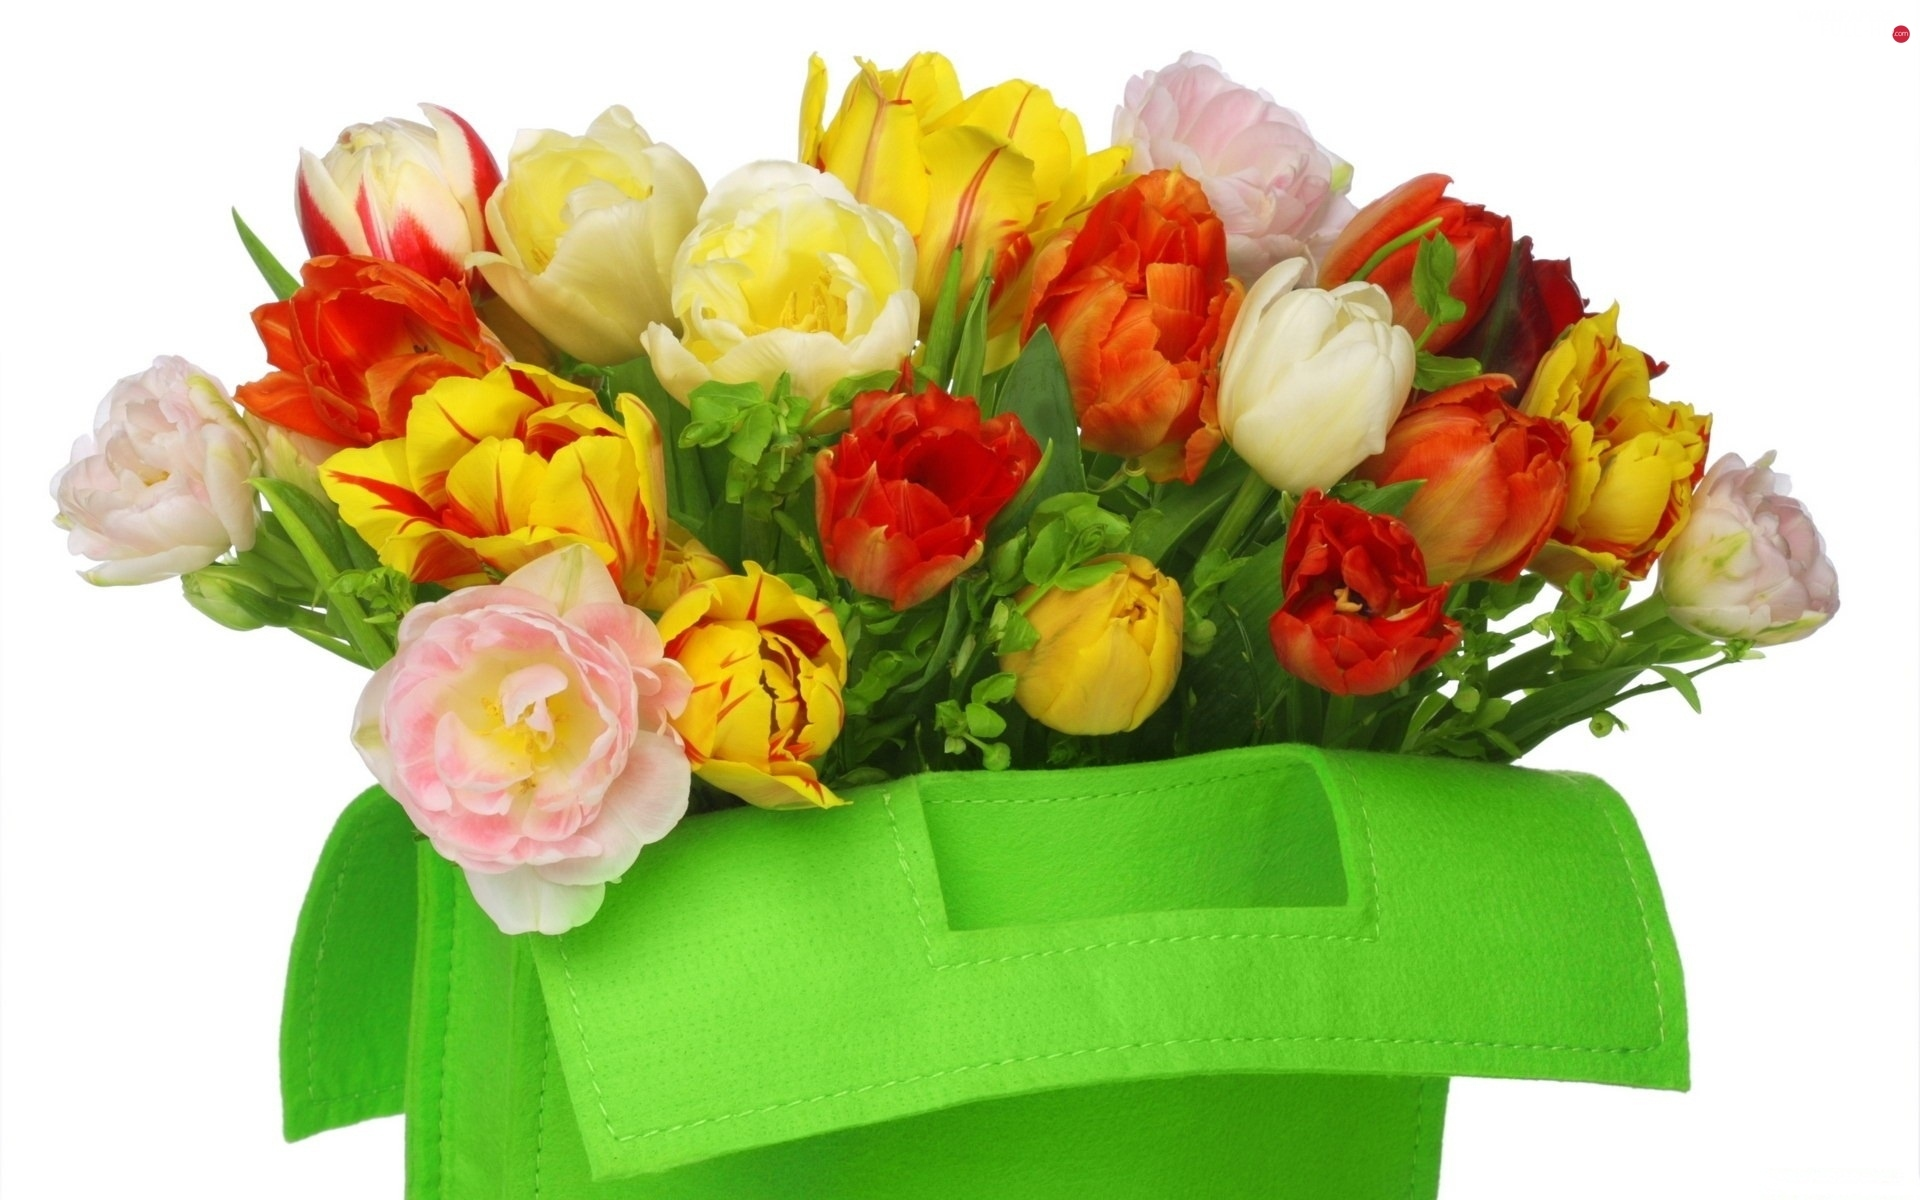 Tulips, color, Green, bag